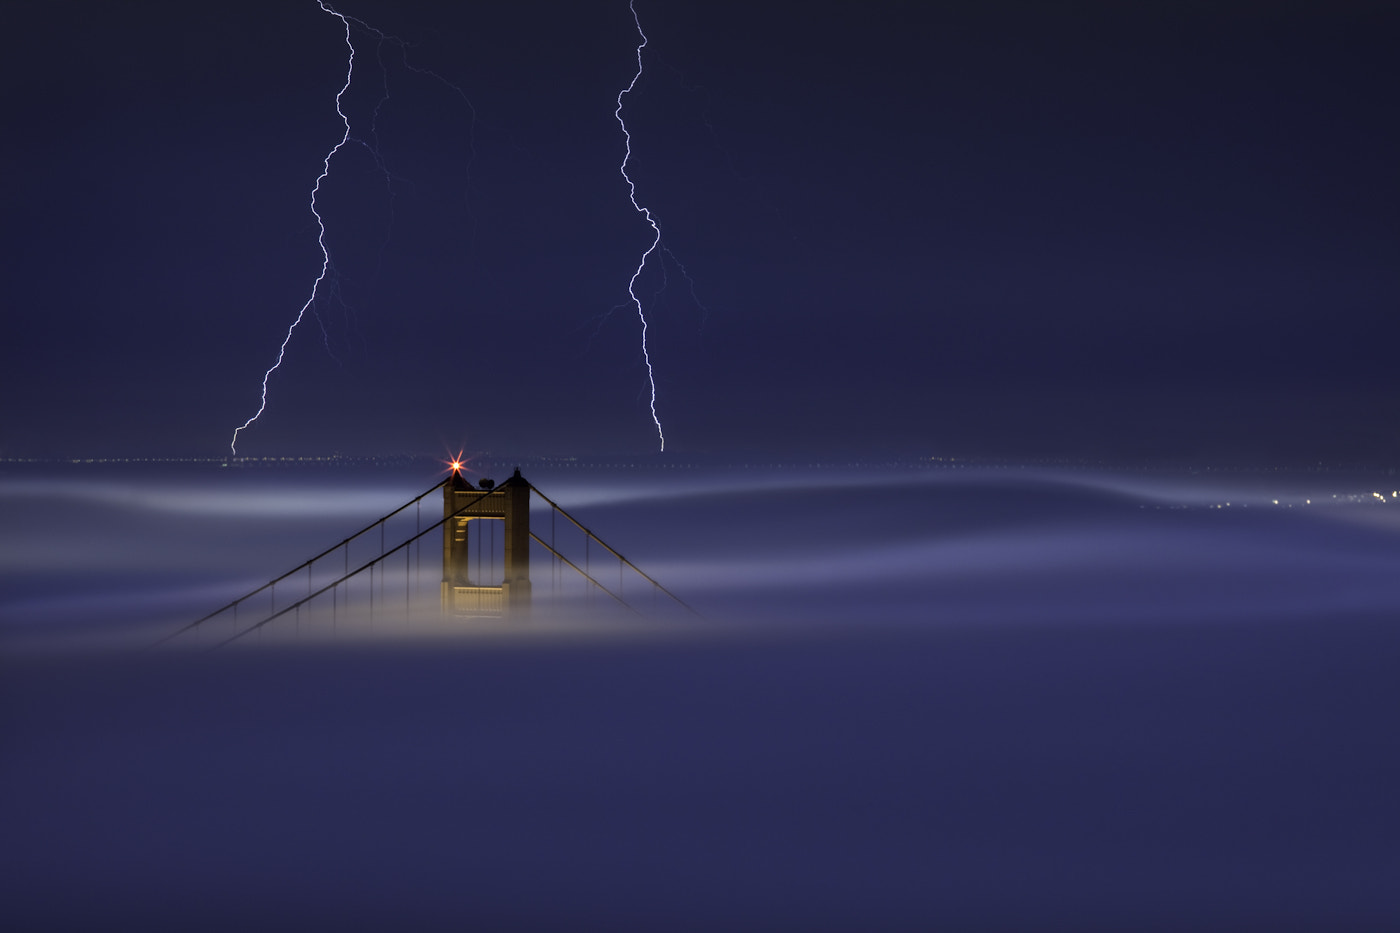 Photograph S T A T I C  by Steve (Maxx) Landeros on 500px